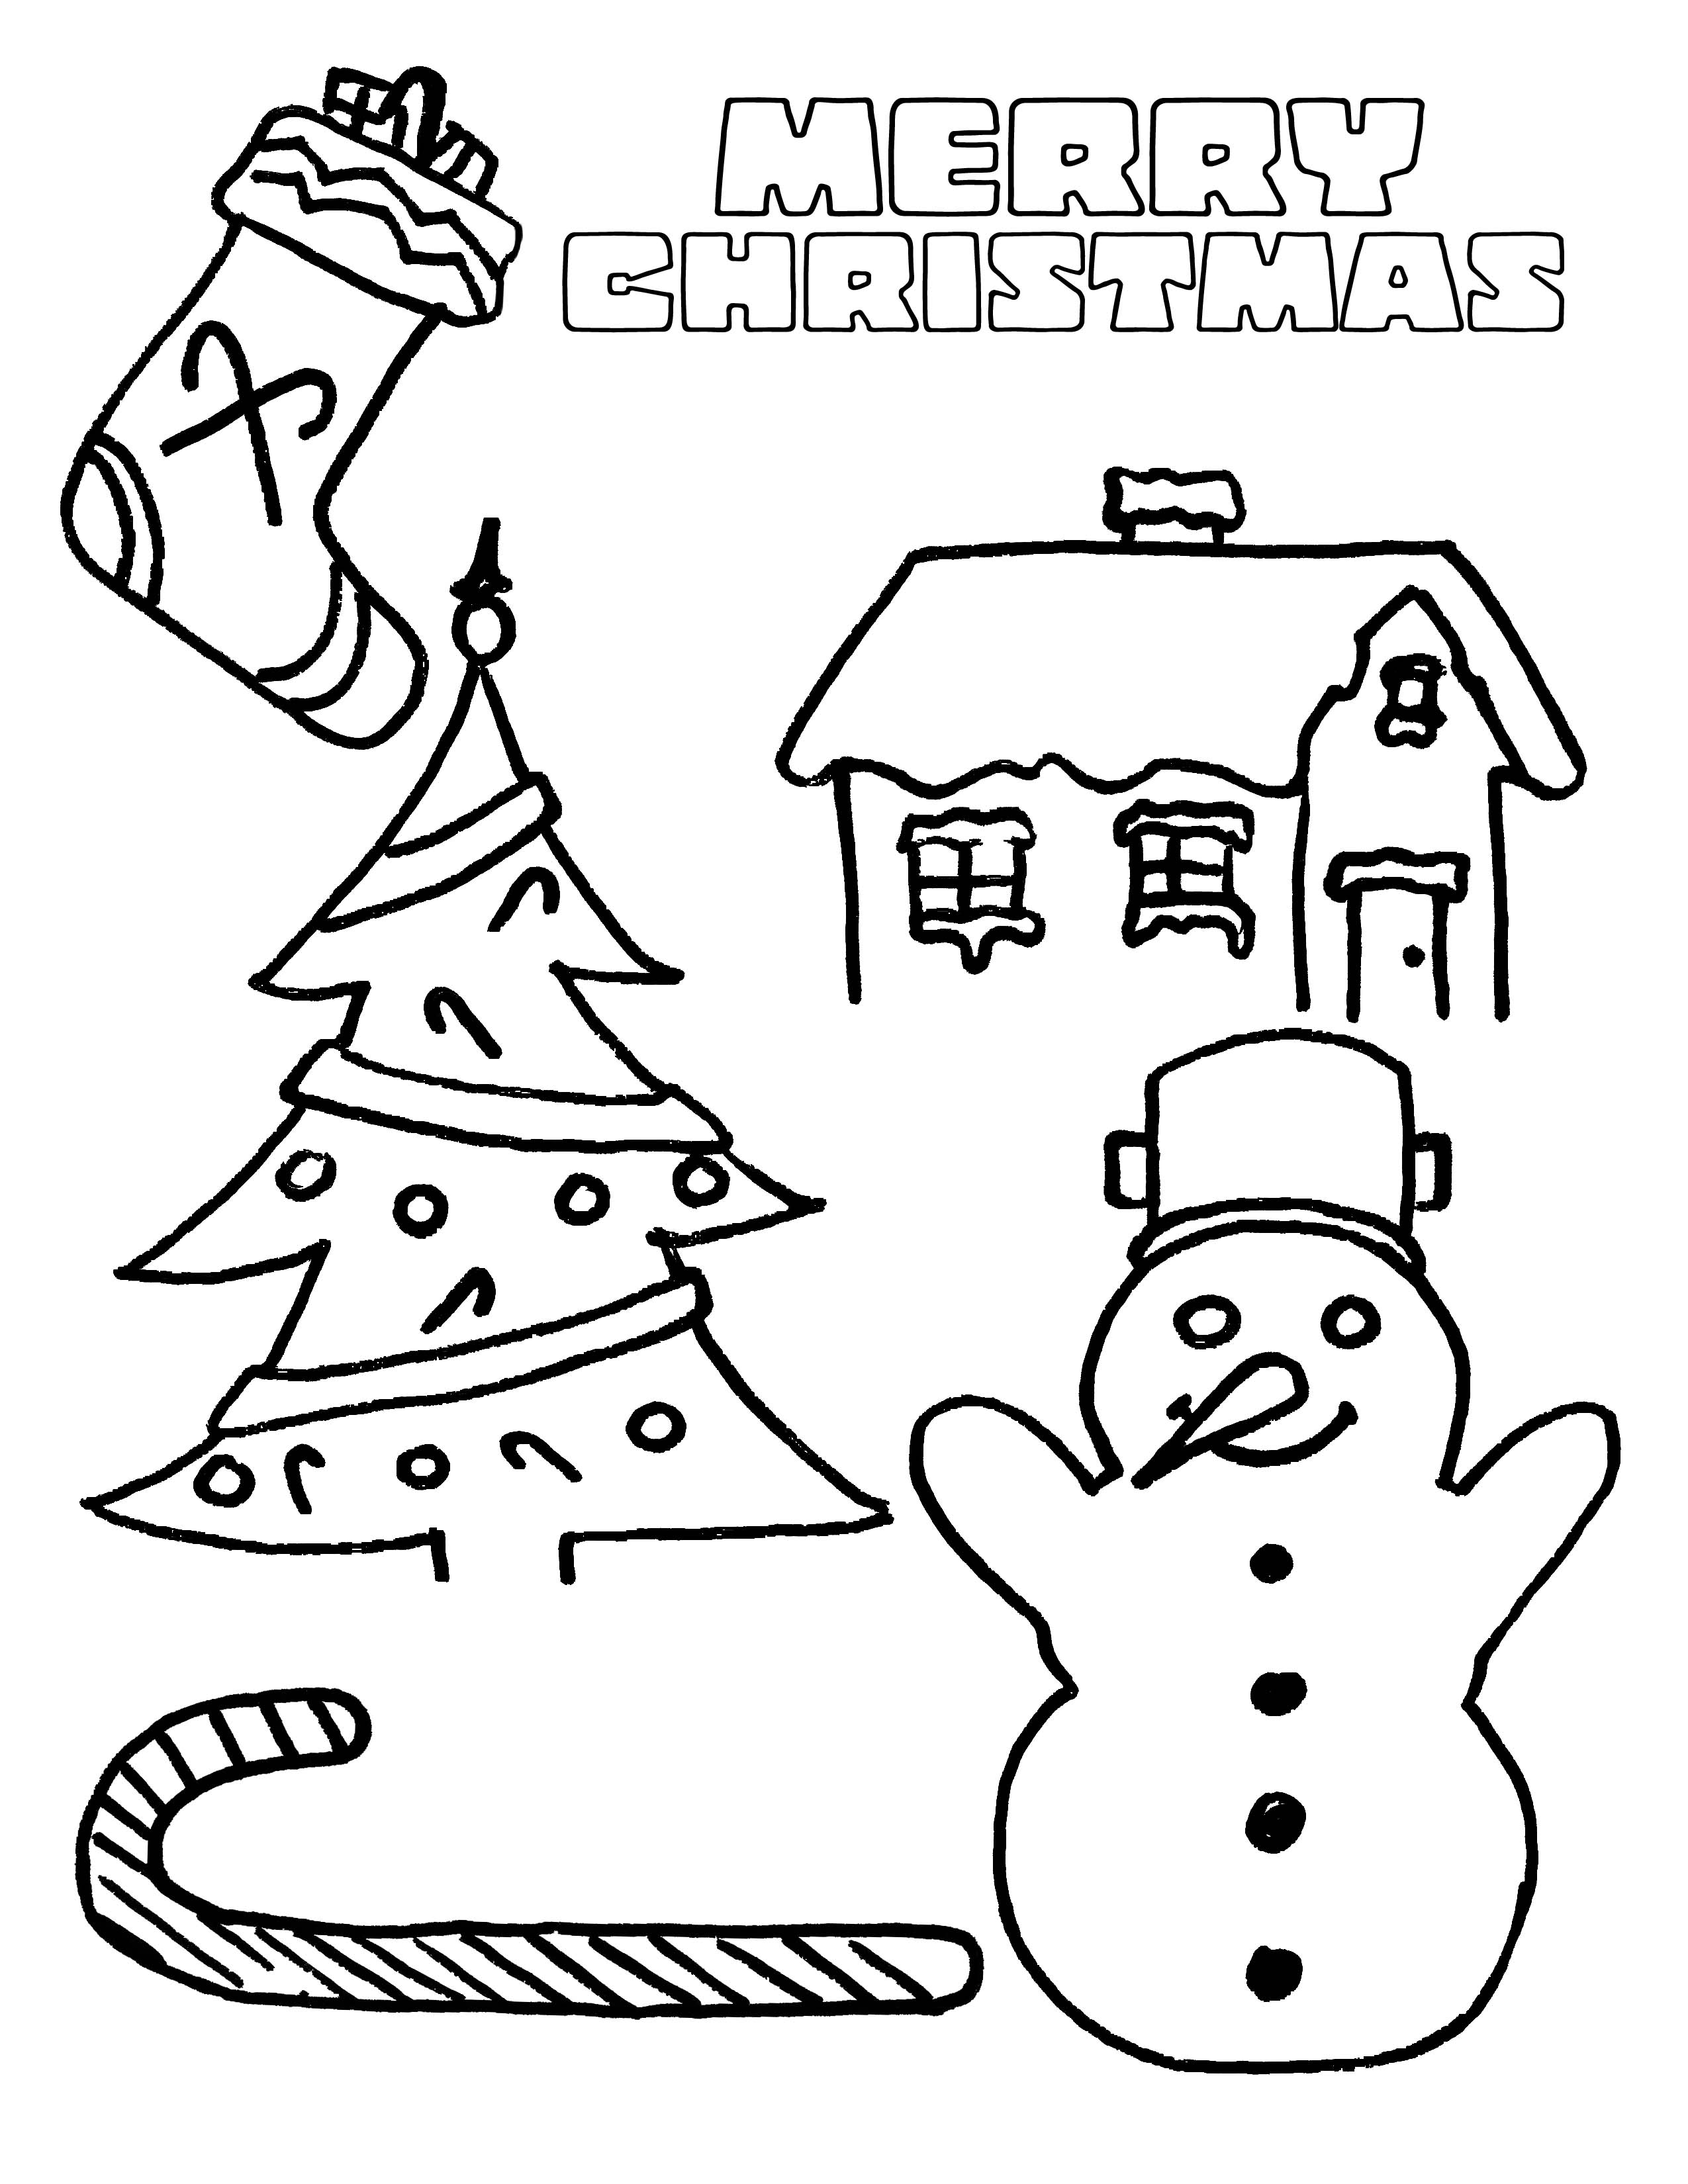 Easy Christmas Coloring Pages For Toddlers.Coloring Pages For Toddlers Christmas At Getdrawings Com